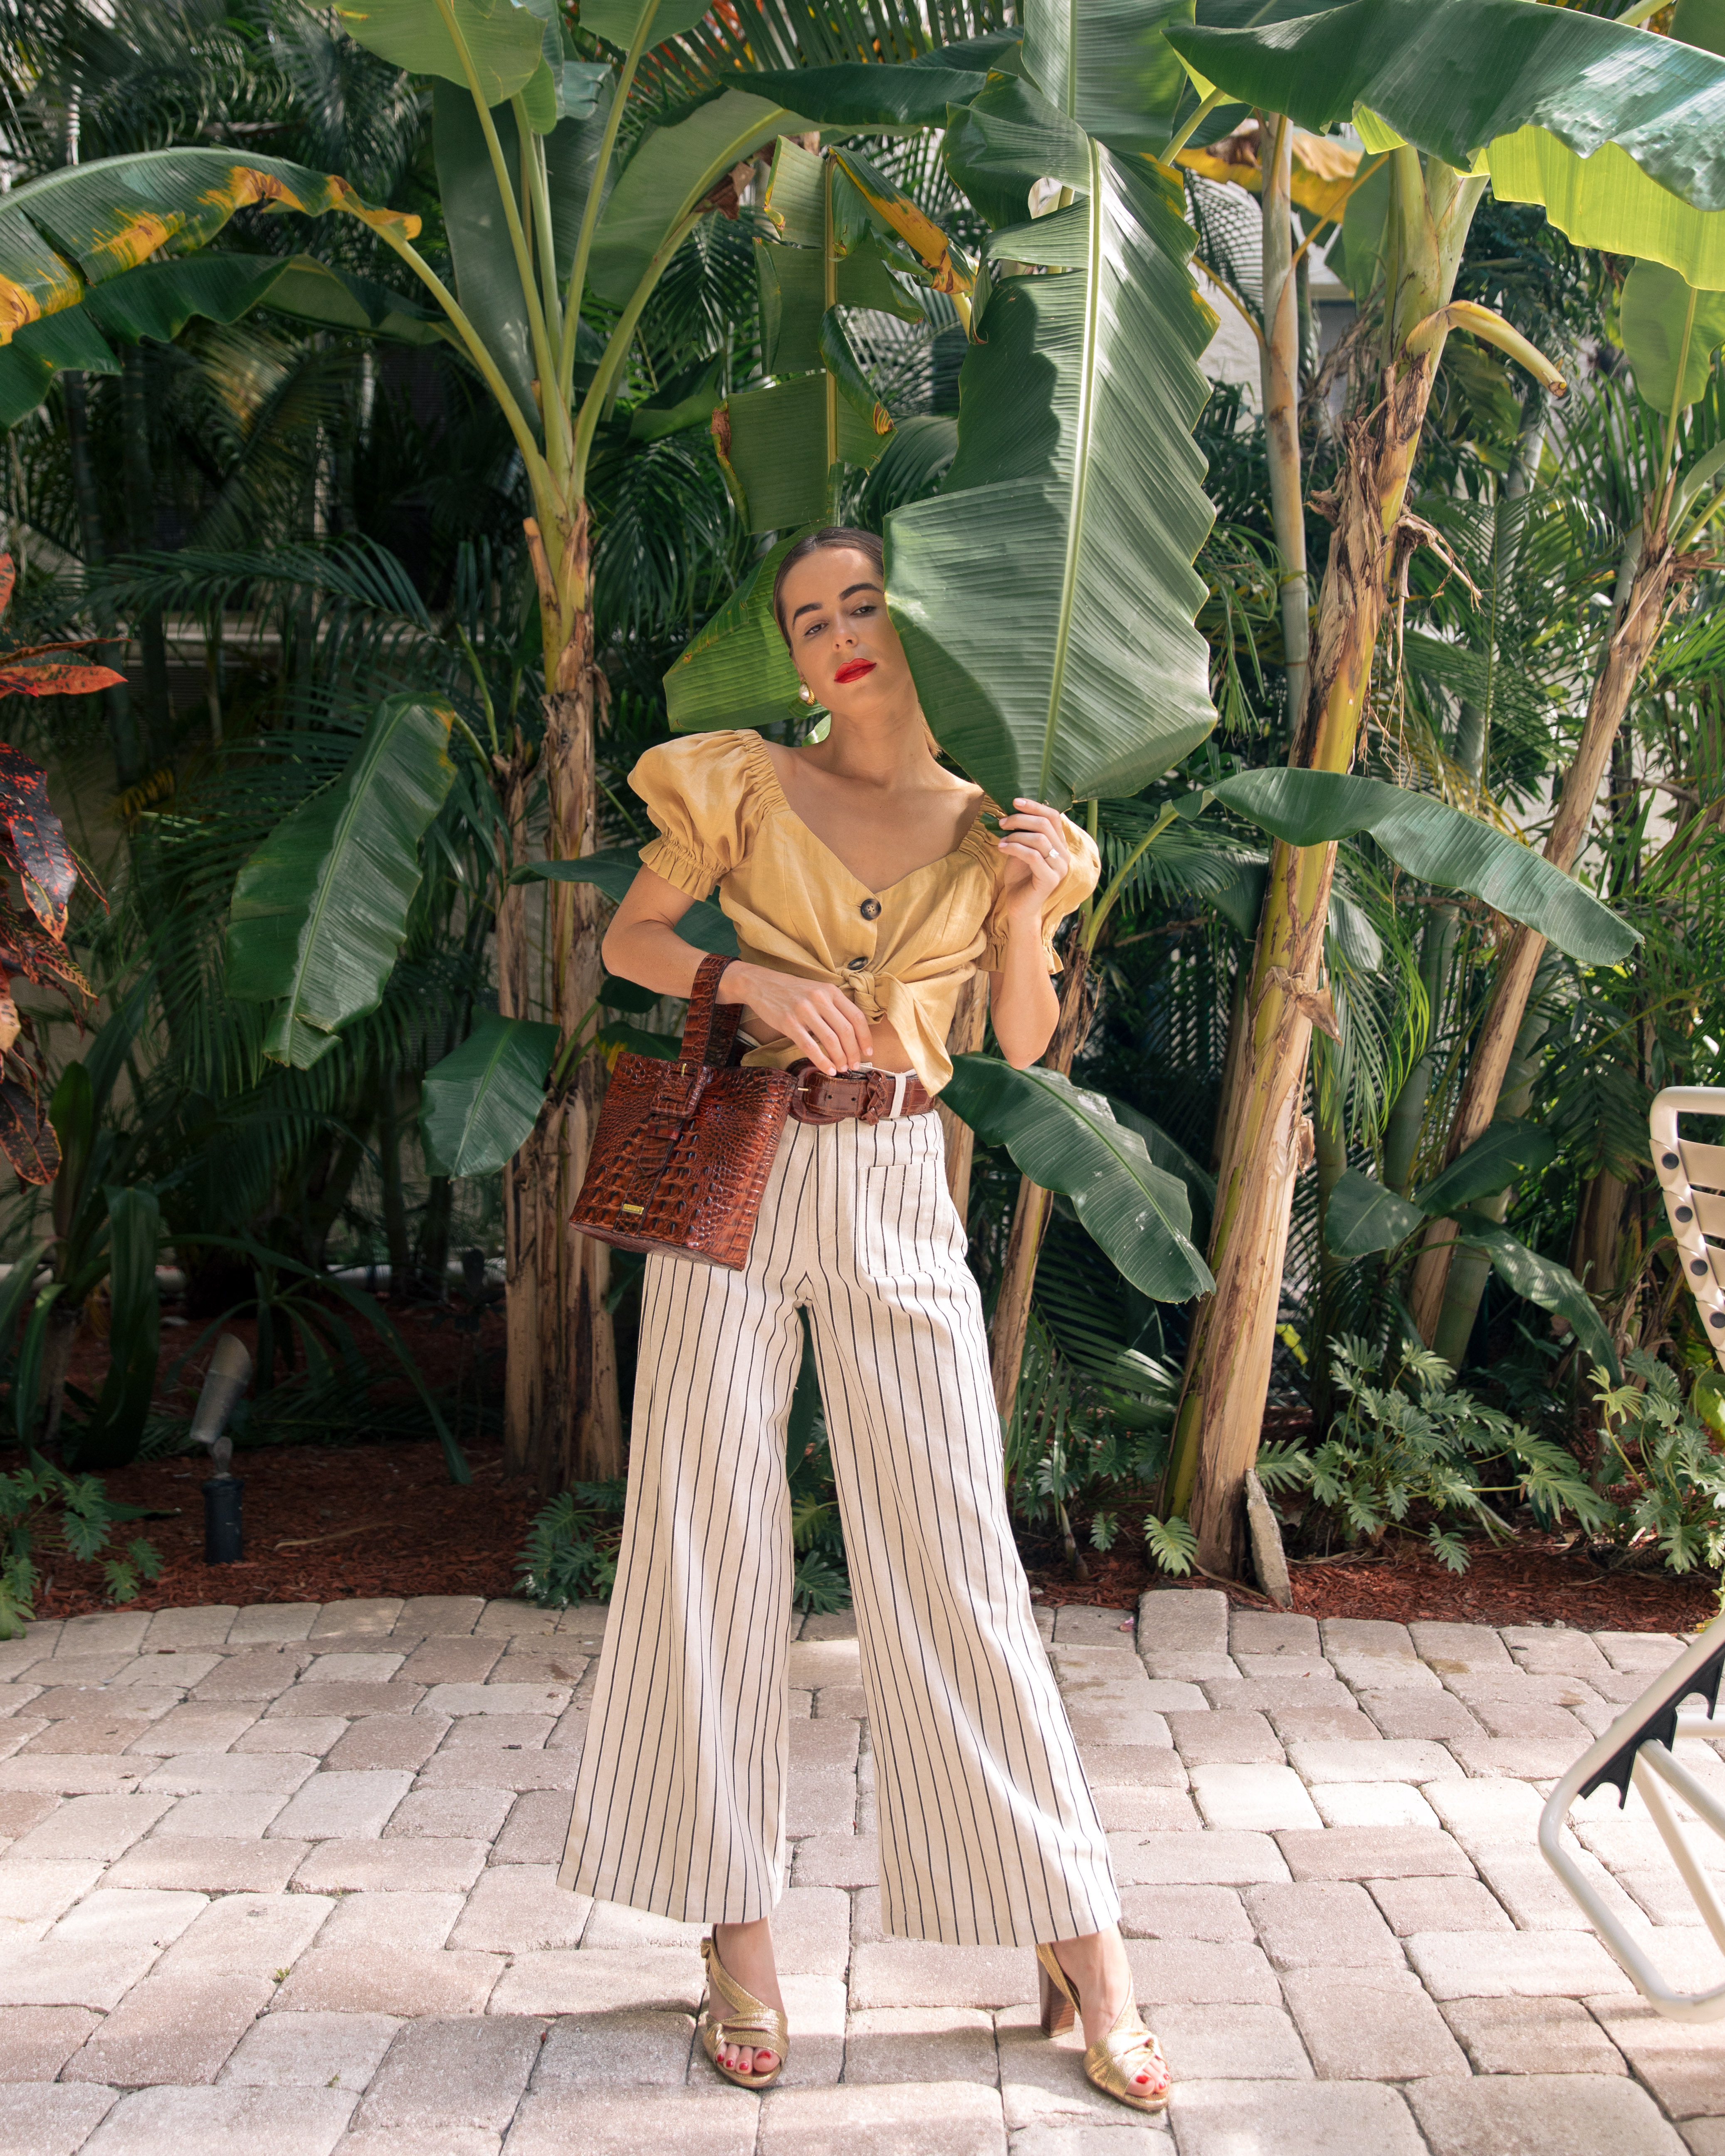 Fashion Blogger Stephanie Hill from The Style Bungalow shares her Life As I Know It May